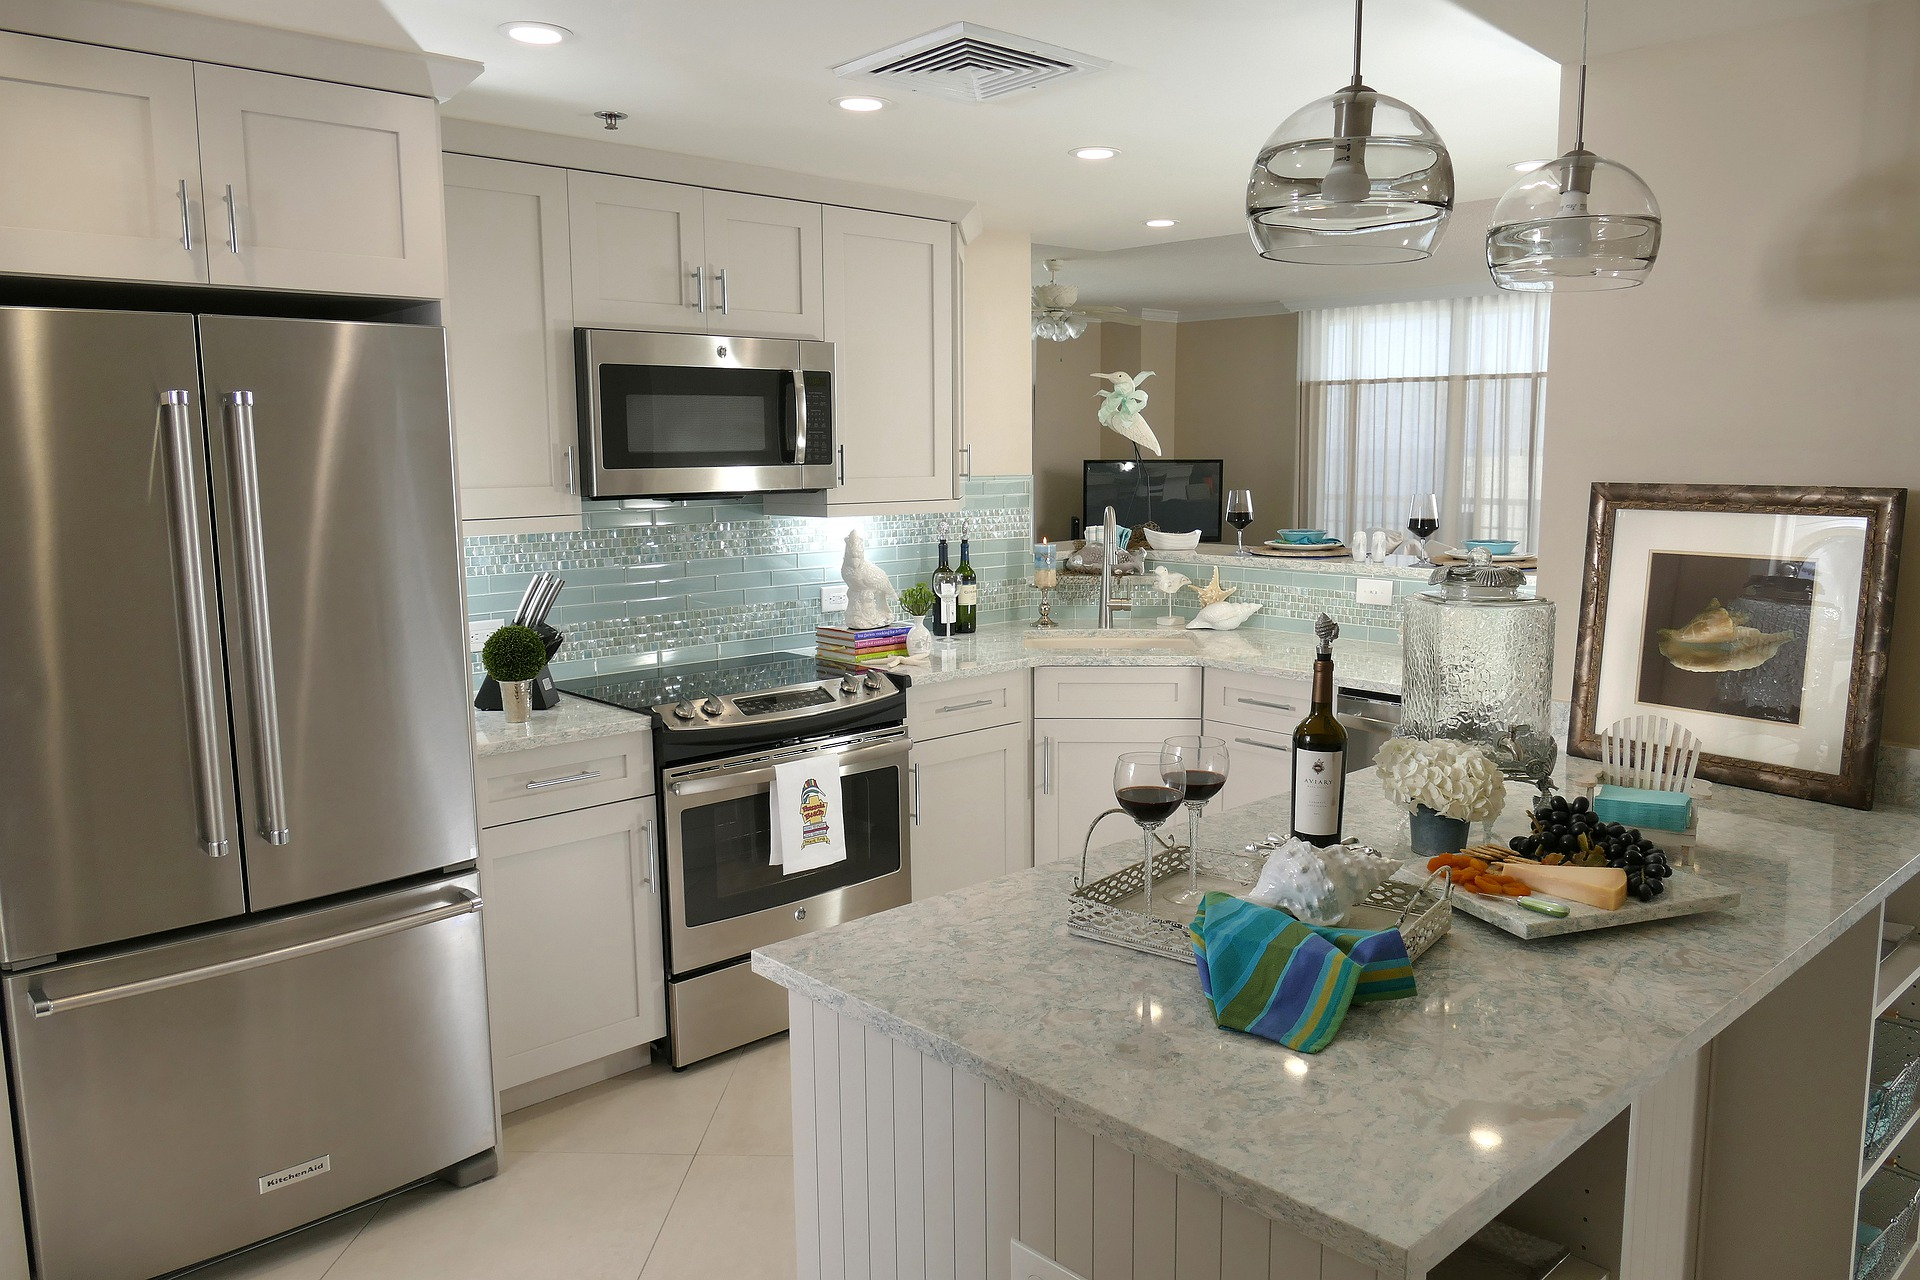 Image showing the kitchen after remodeling was complete